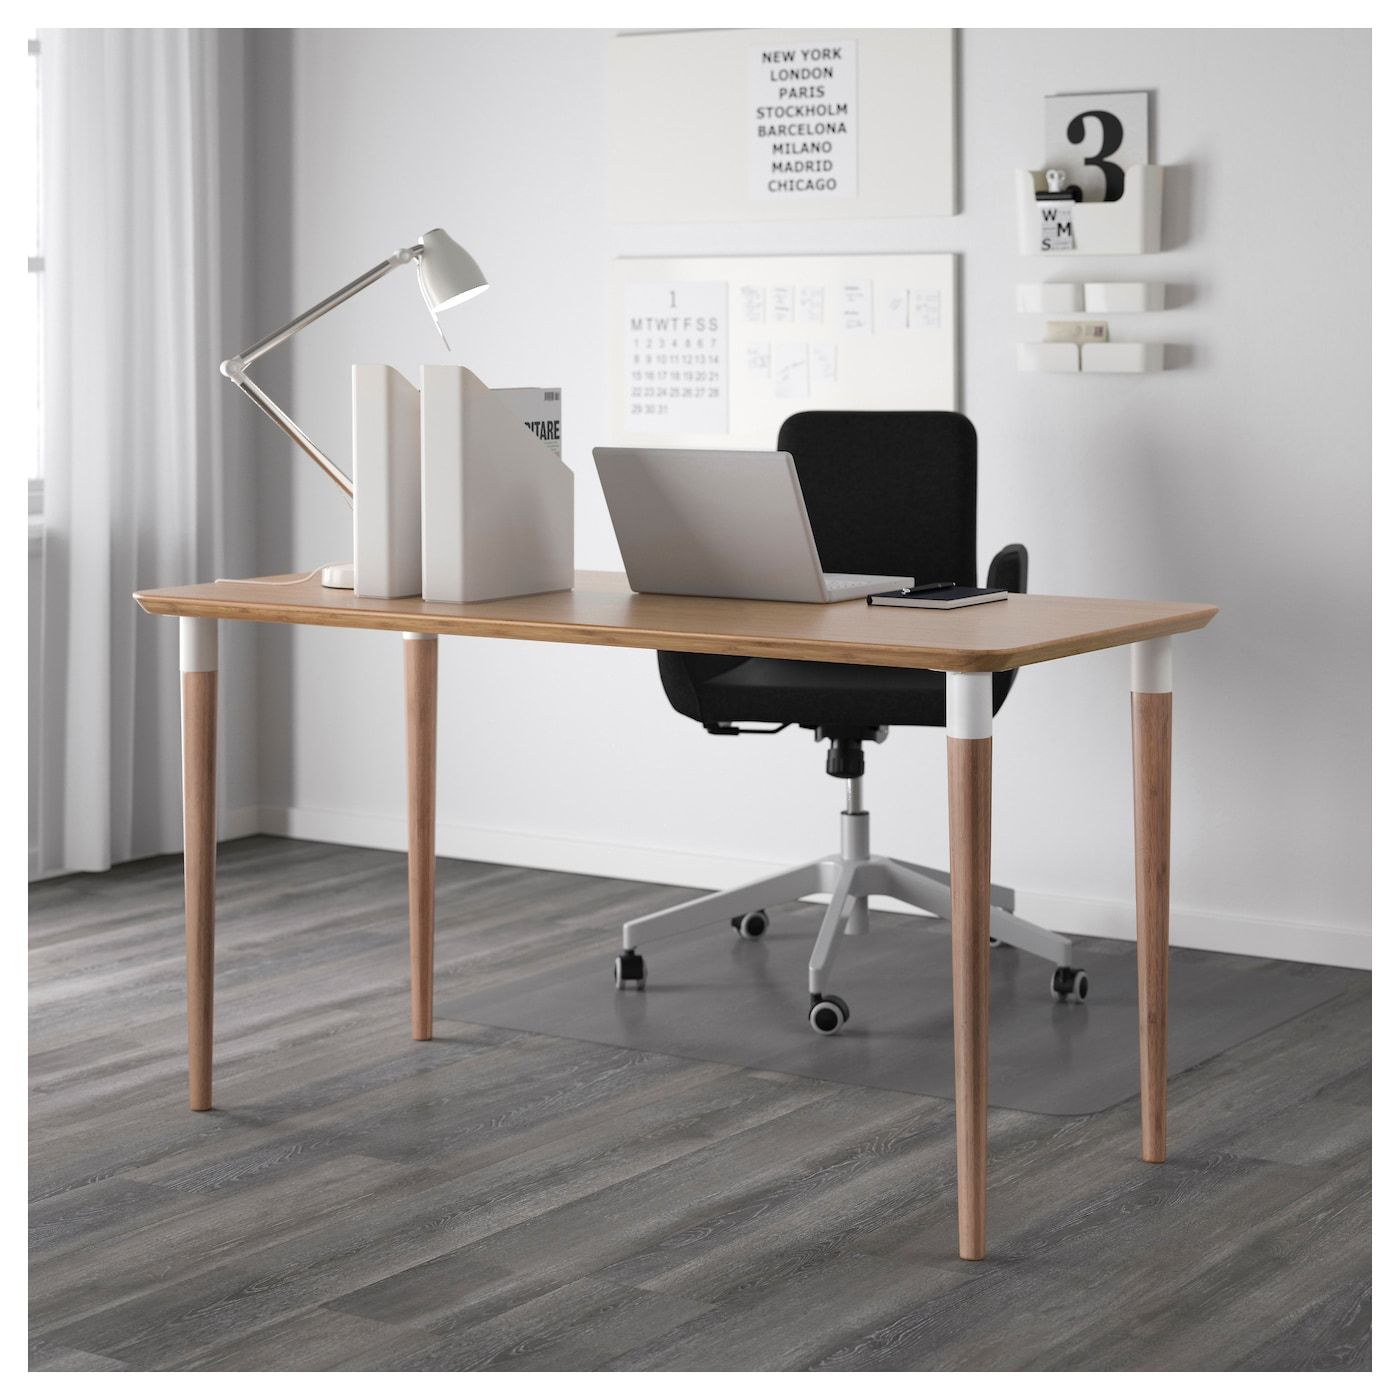 Ikea hilver bamboo tabletop in 2019 furniture hacks ikea table ikea desk desk - Table bureau ikea ...